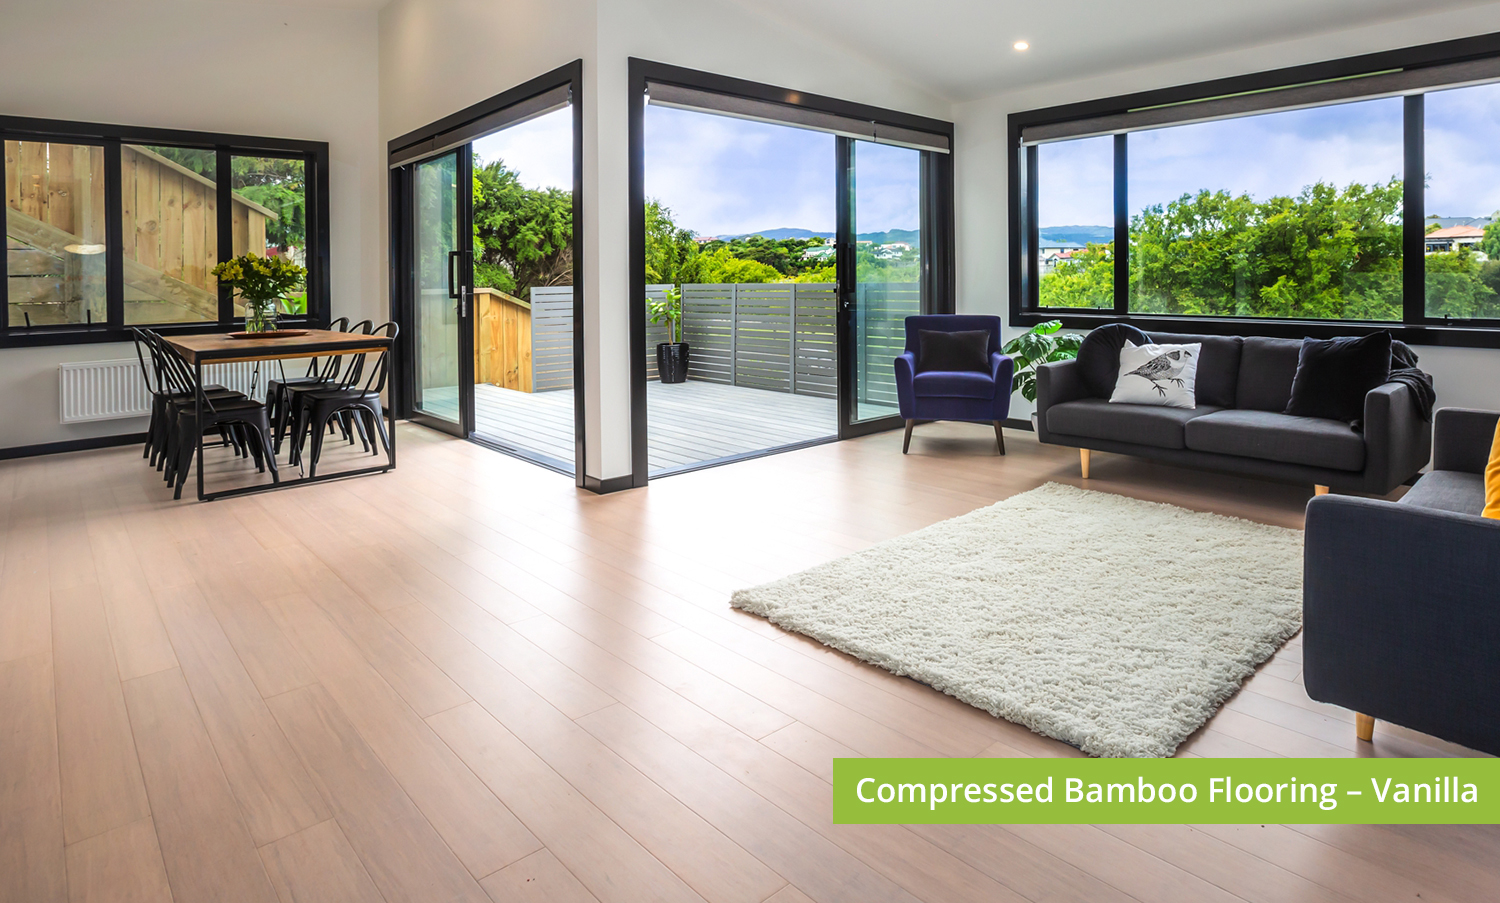 Bamboo-compressed-flooring-vanilla-2